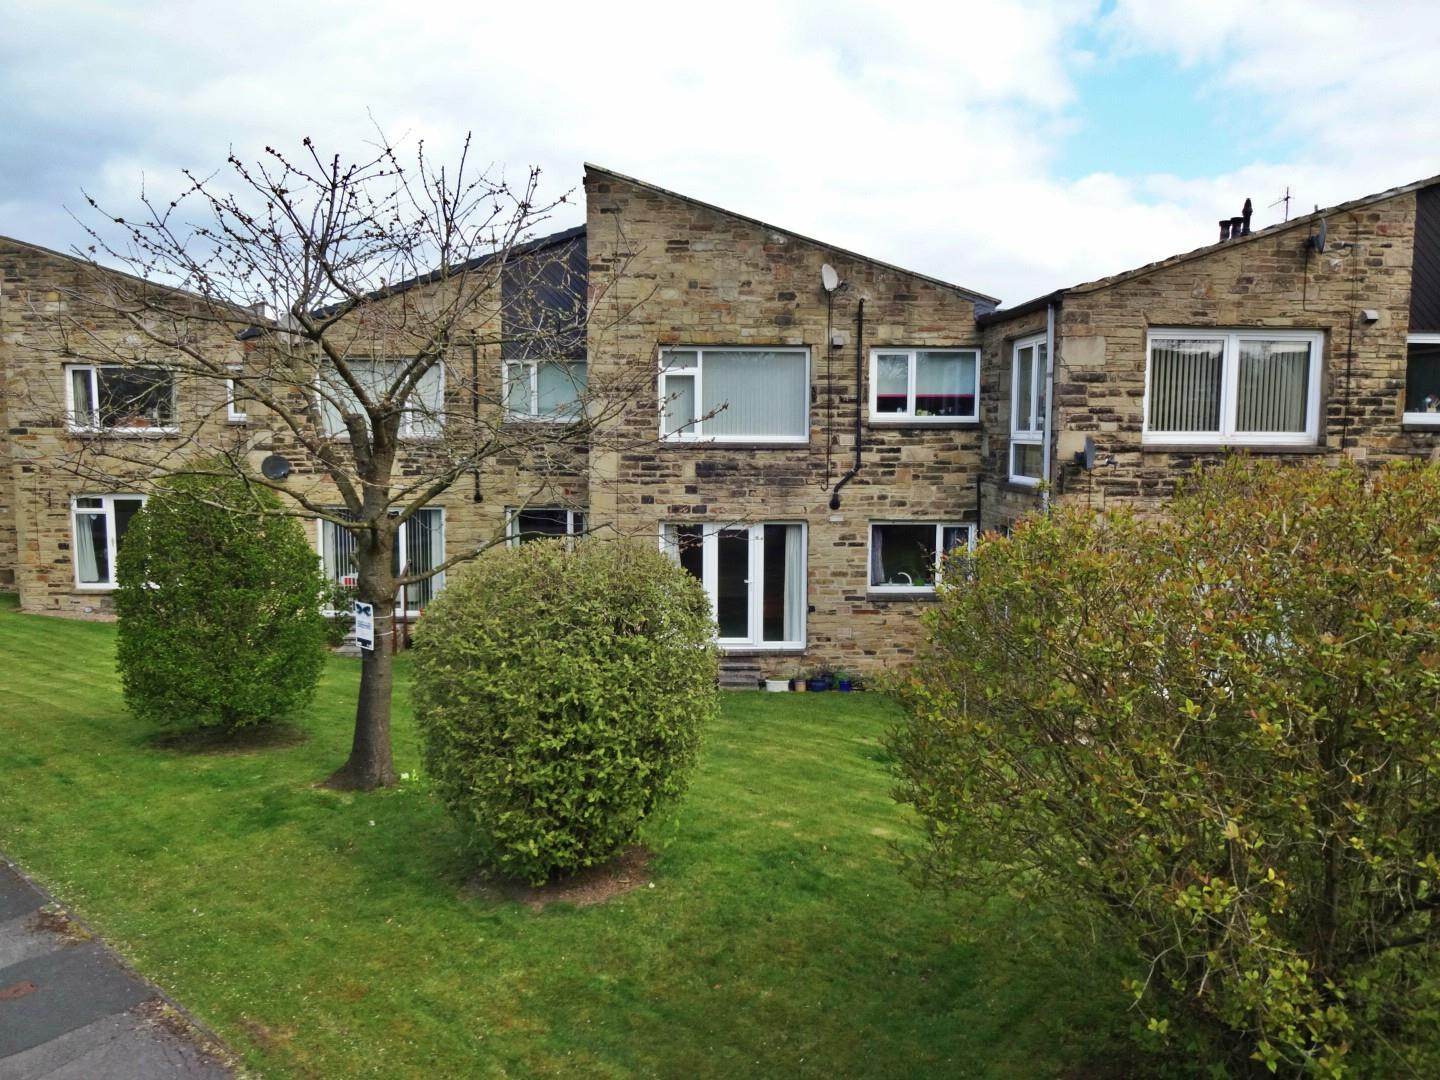 St. Peters Way, Ilkley, LS29 6NY